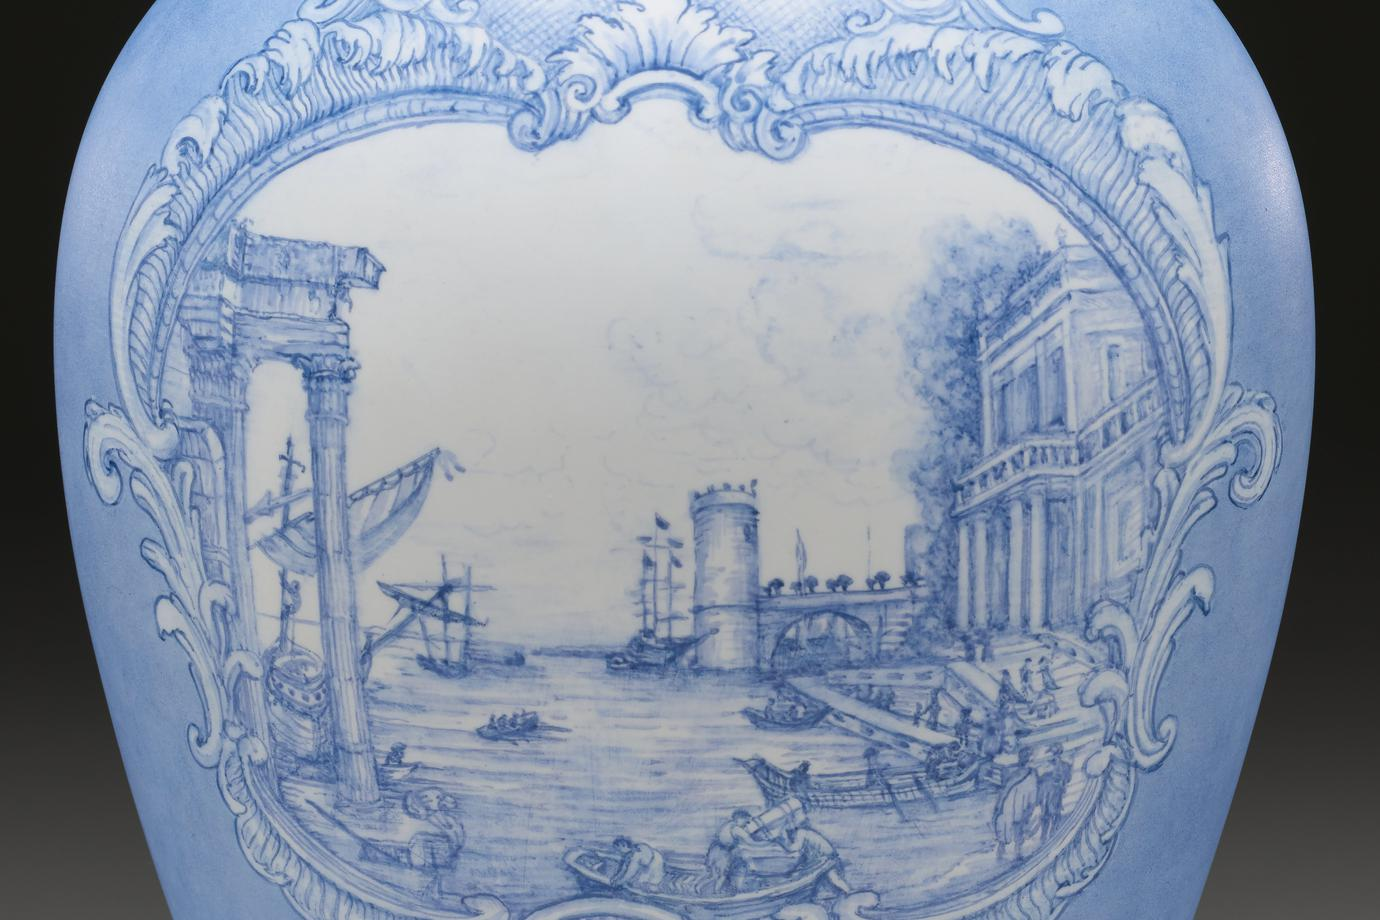 oval concave base; sides flare outward from base particularly on short ends and flare inward toward small oval mouth opening with short neck; white porcelain with light blue designs; wide sides decorated with acanthus-crowned man in jewels and royal robes holding scepters, riding in a small, elegant sailboat with two birds and two fish in cartouche beneath; opposite side decorated with view of row boats at a dock with classical-style buildings and left and right and a round tower at center; partially reclining draped classical figure in cartouche at bottom, with fish and a pair of putti; band of fish around bottom edge; rounded raised cover with knob covered with silver foil